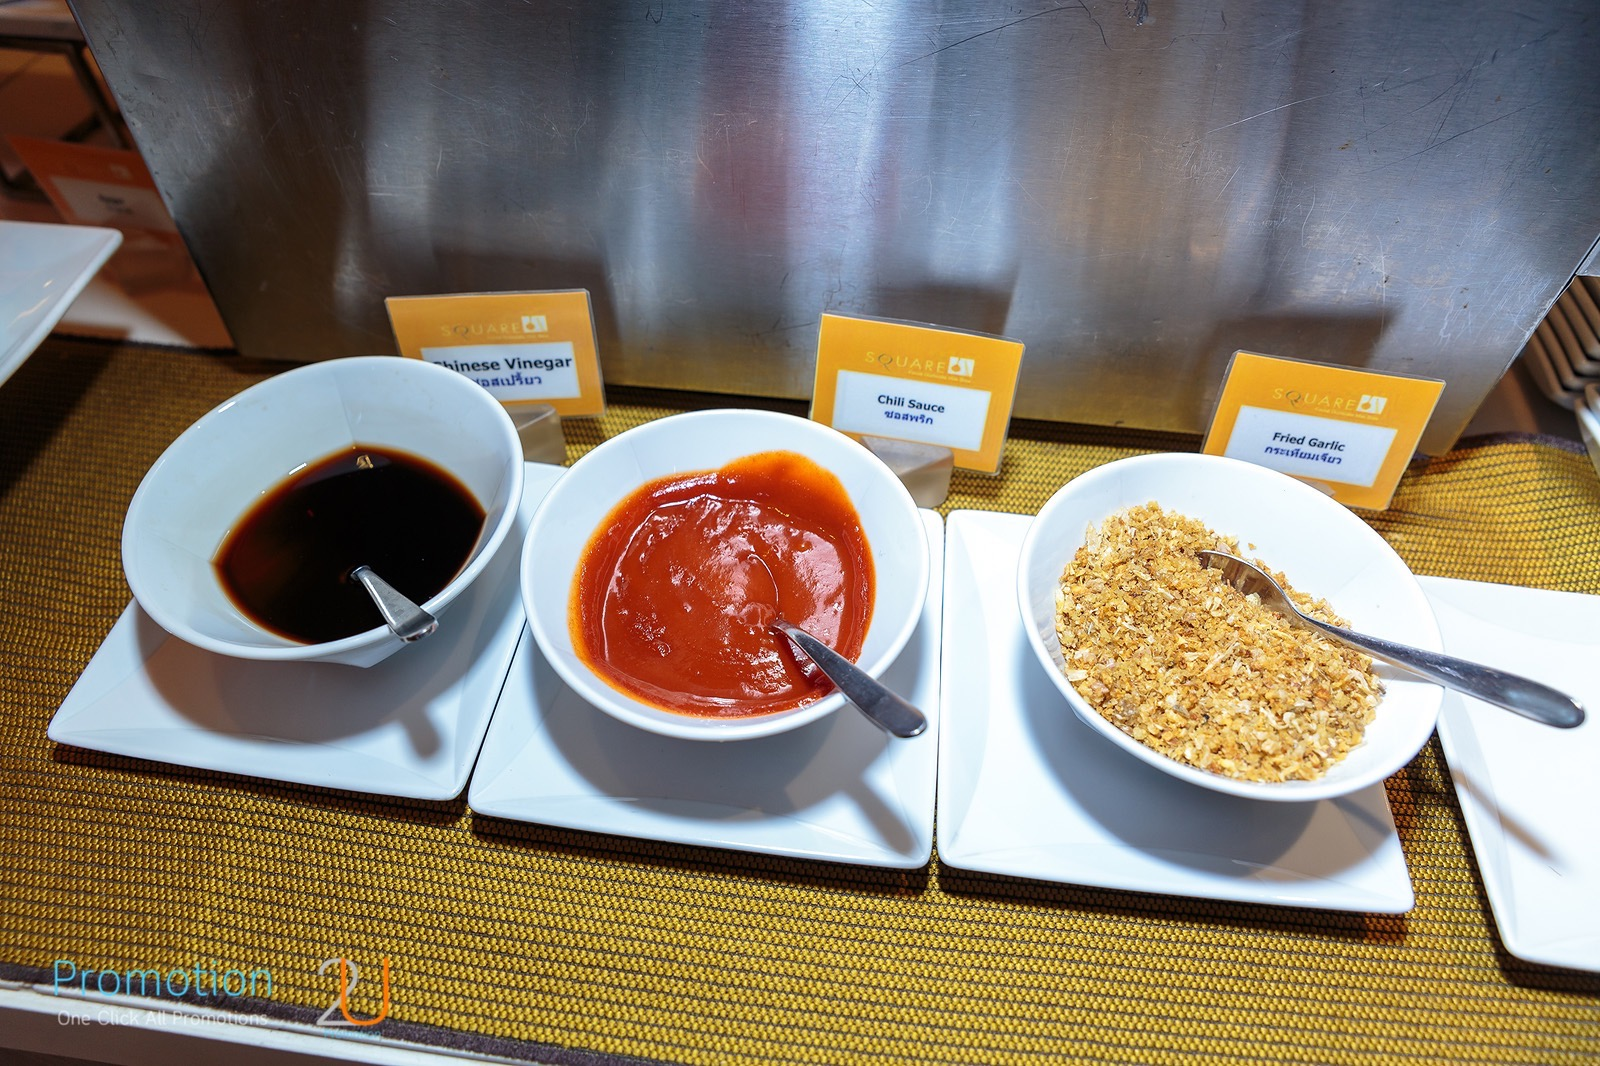 Review promotion muangthong koongtung bufft at the suare novotel impact P83